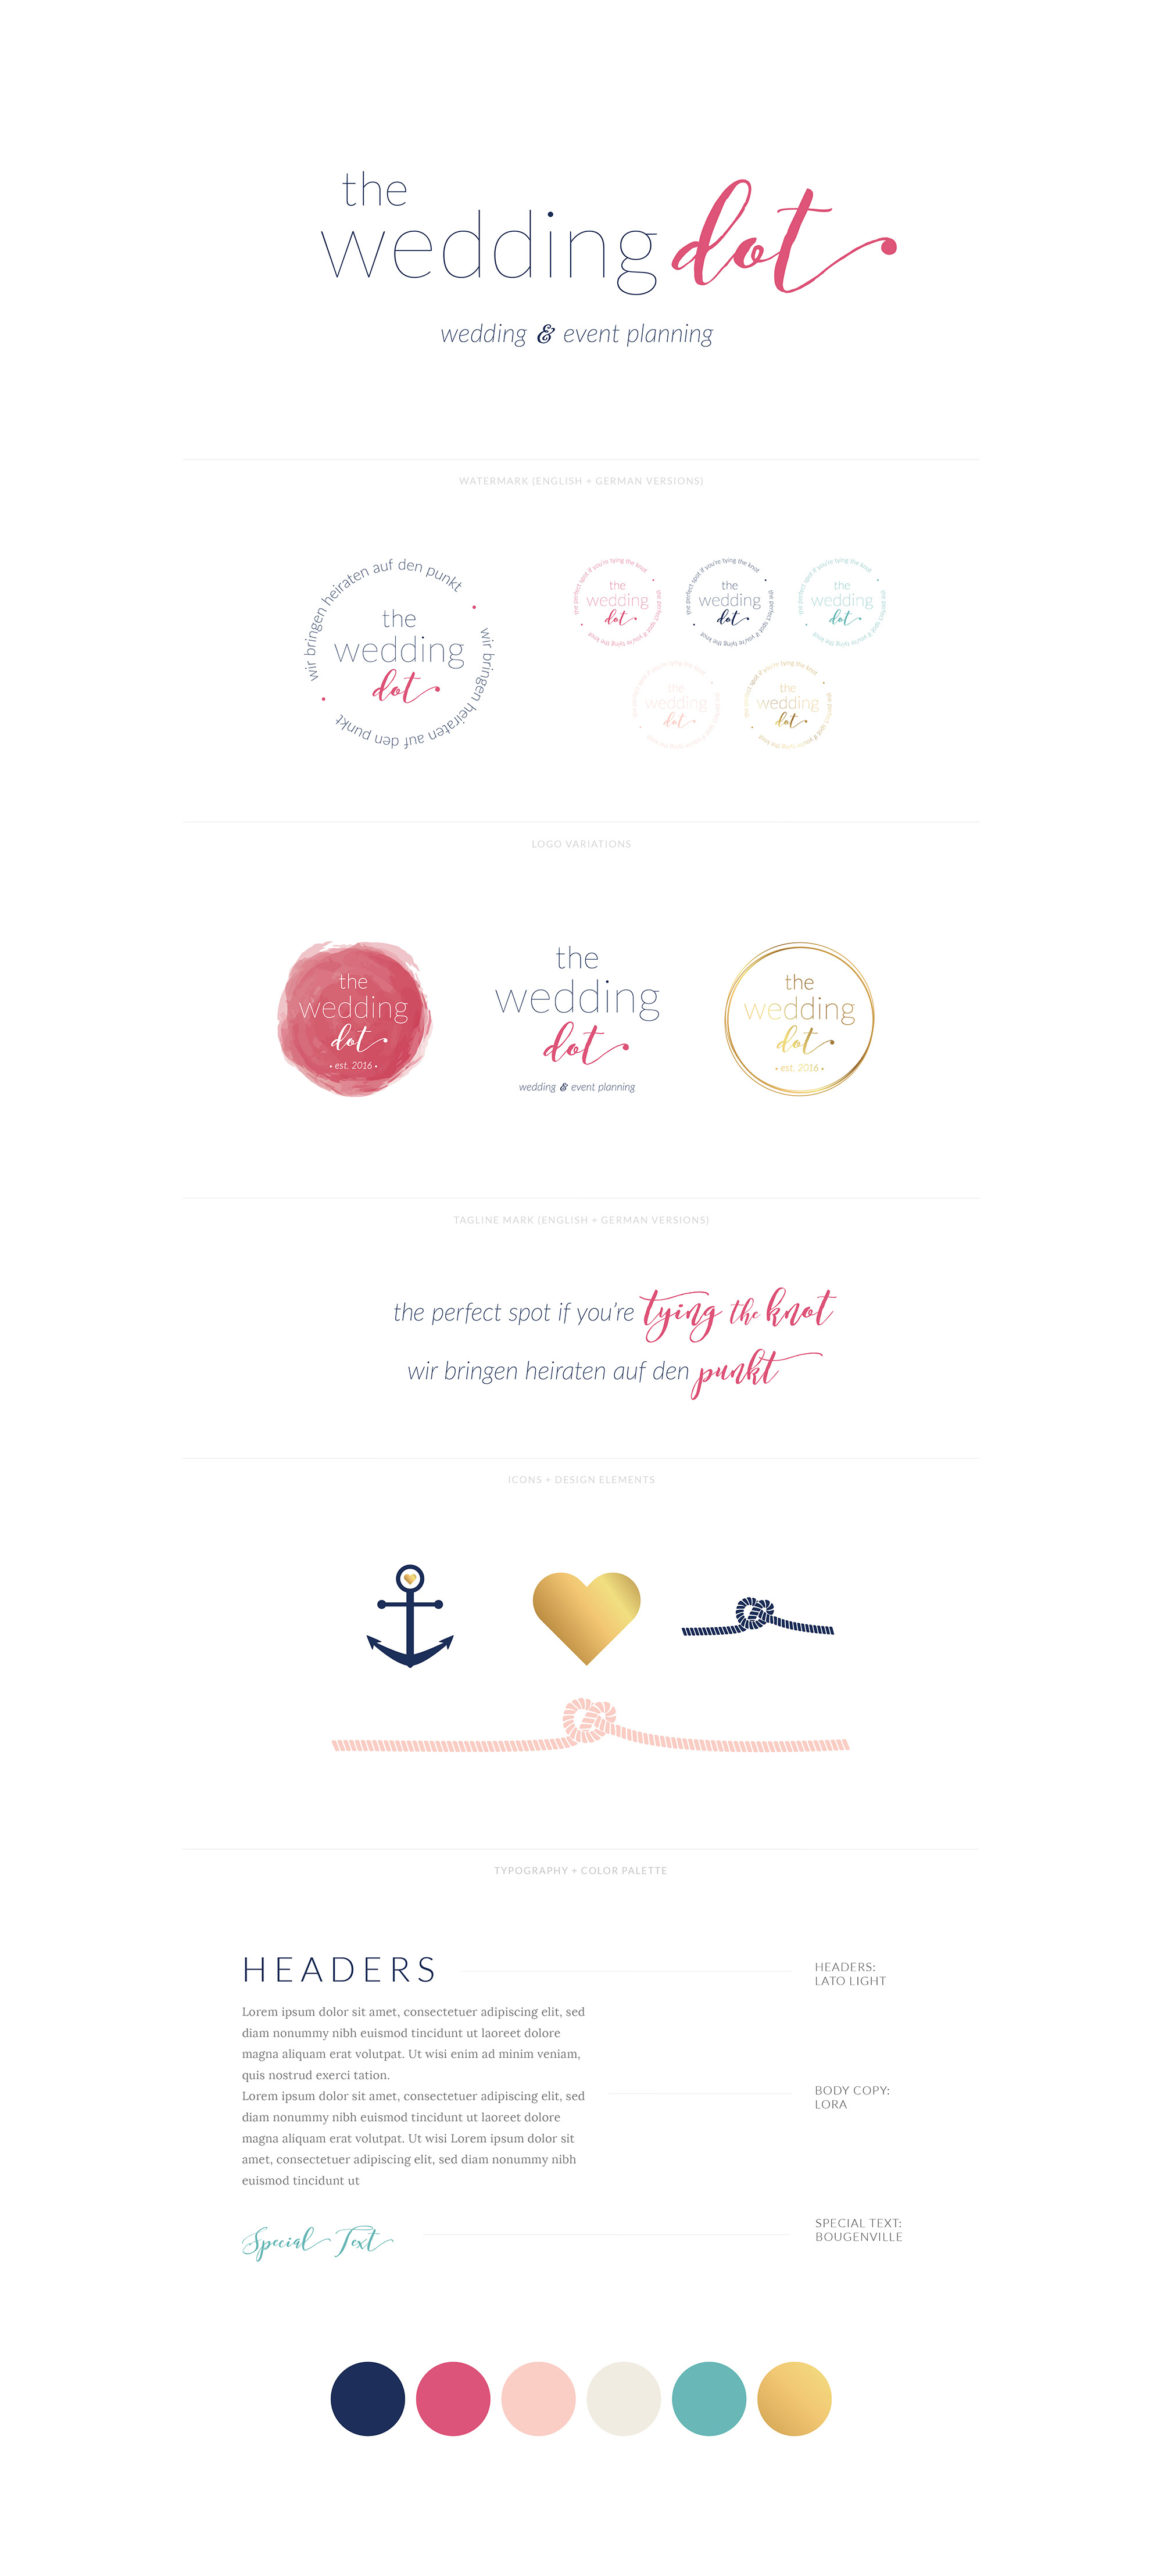 The Wedding Dot | Logo, Watermark, Tagline, Icons and Design Elements, Font Styling, Color Palette  | Elegant, Fun, Personable Branding by AllieMarie Design